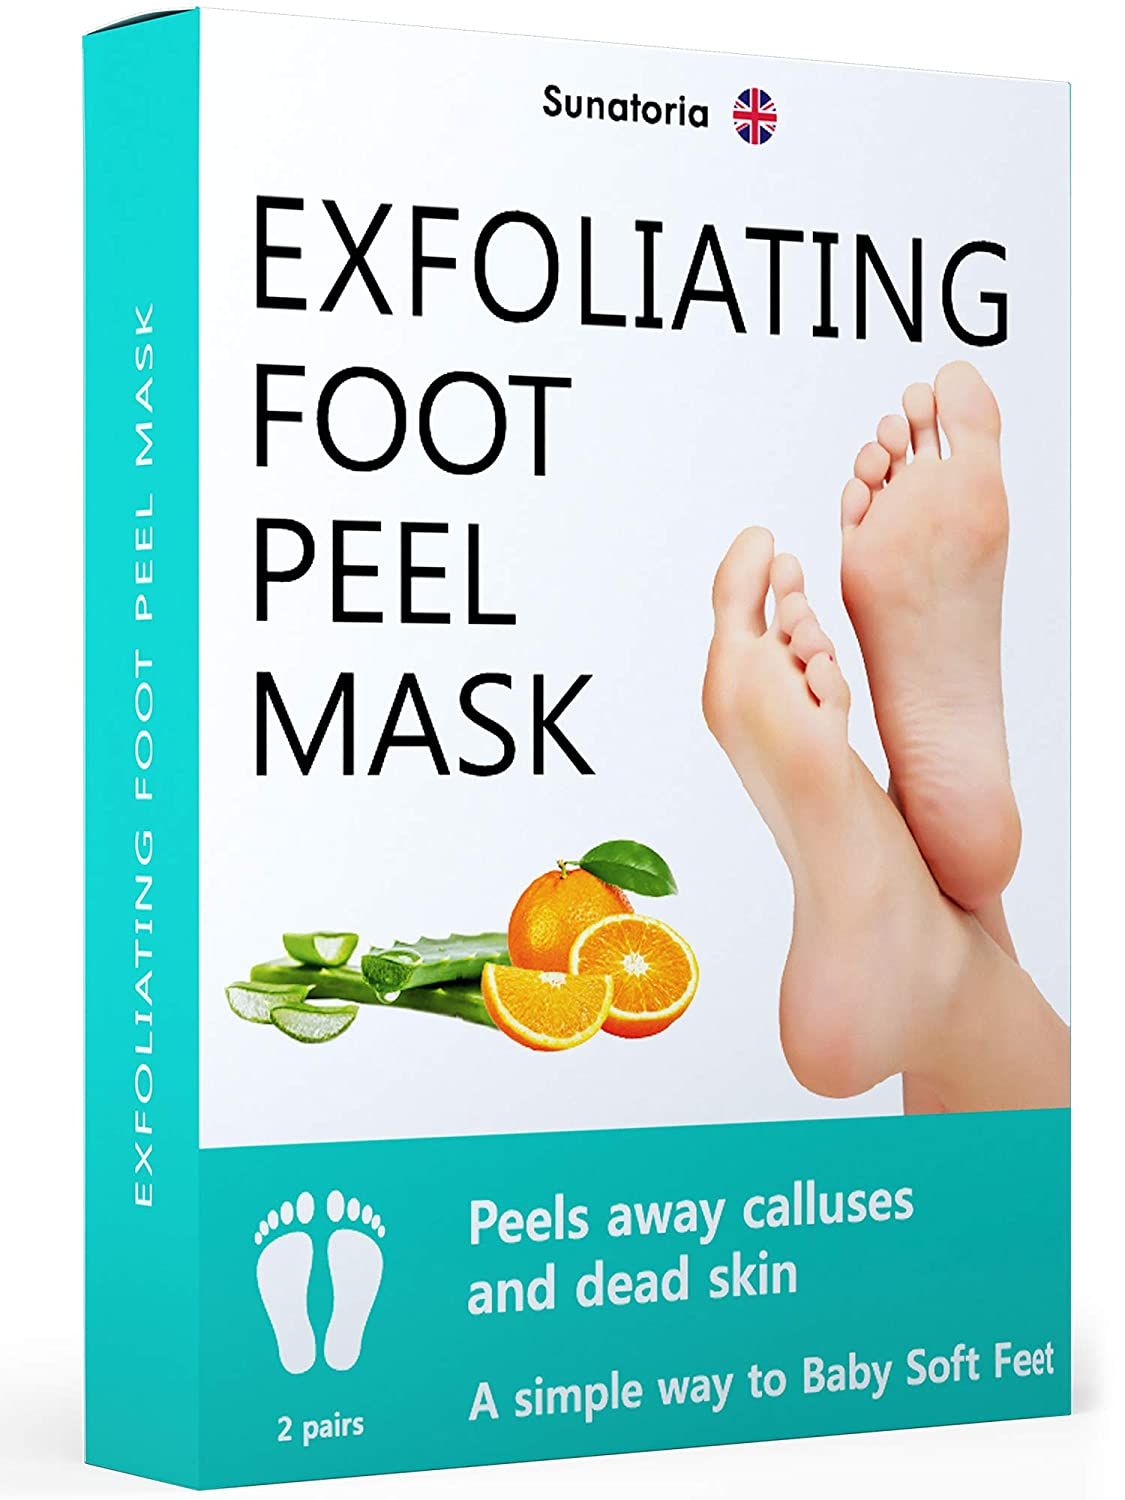 Improved 2019 Formula Exfoliating Foot Peel Mask - Makes Your Feet Baby Soft - Peeling away Calluses and Dead Skin Remover - Repair Rough Heels with Baby Foot Gel Socks Booties.